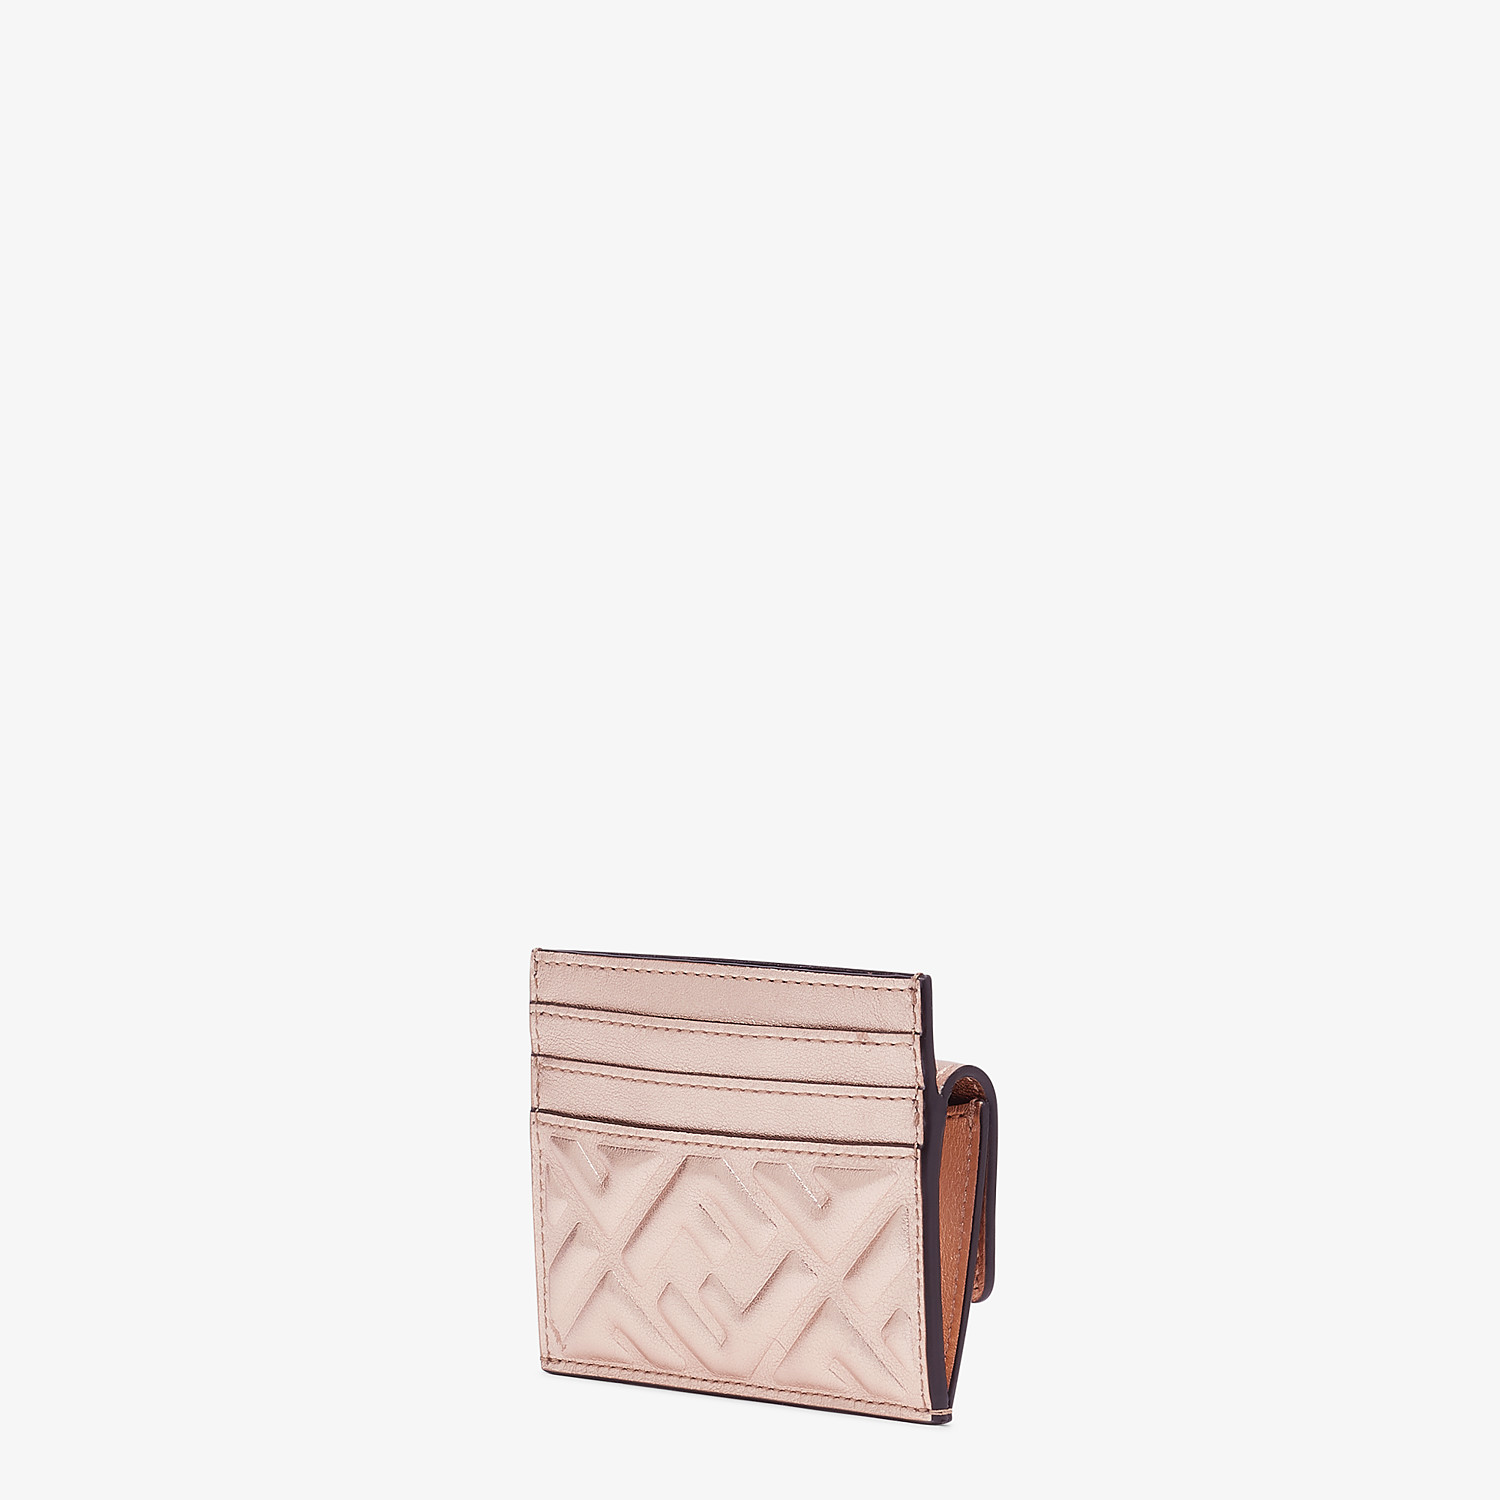 FENDI CARD HOLDER - Pink leather cardholder - view 2 detail